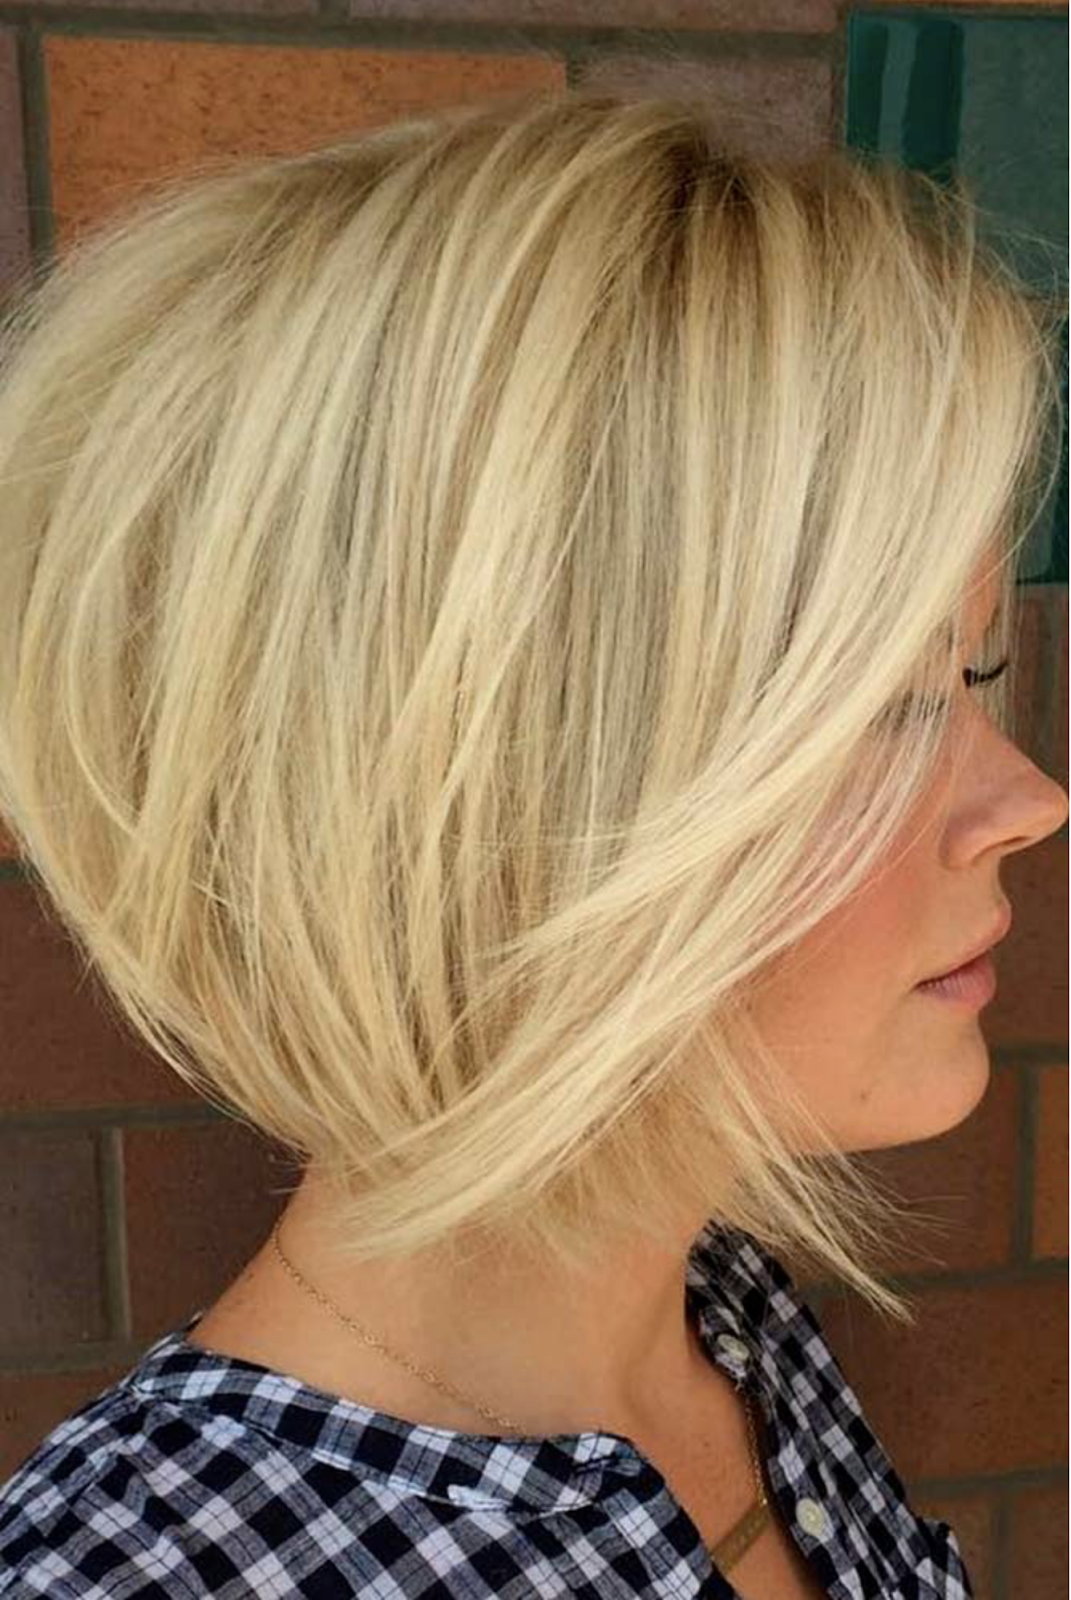 2020 Trendy Styles For Modern Bob Haircuts For Fine Hair -  LatestHairstylePedia.com